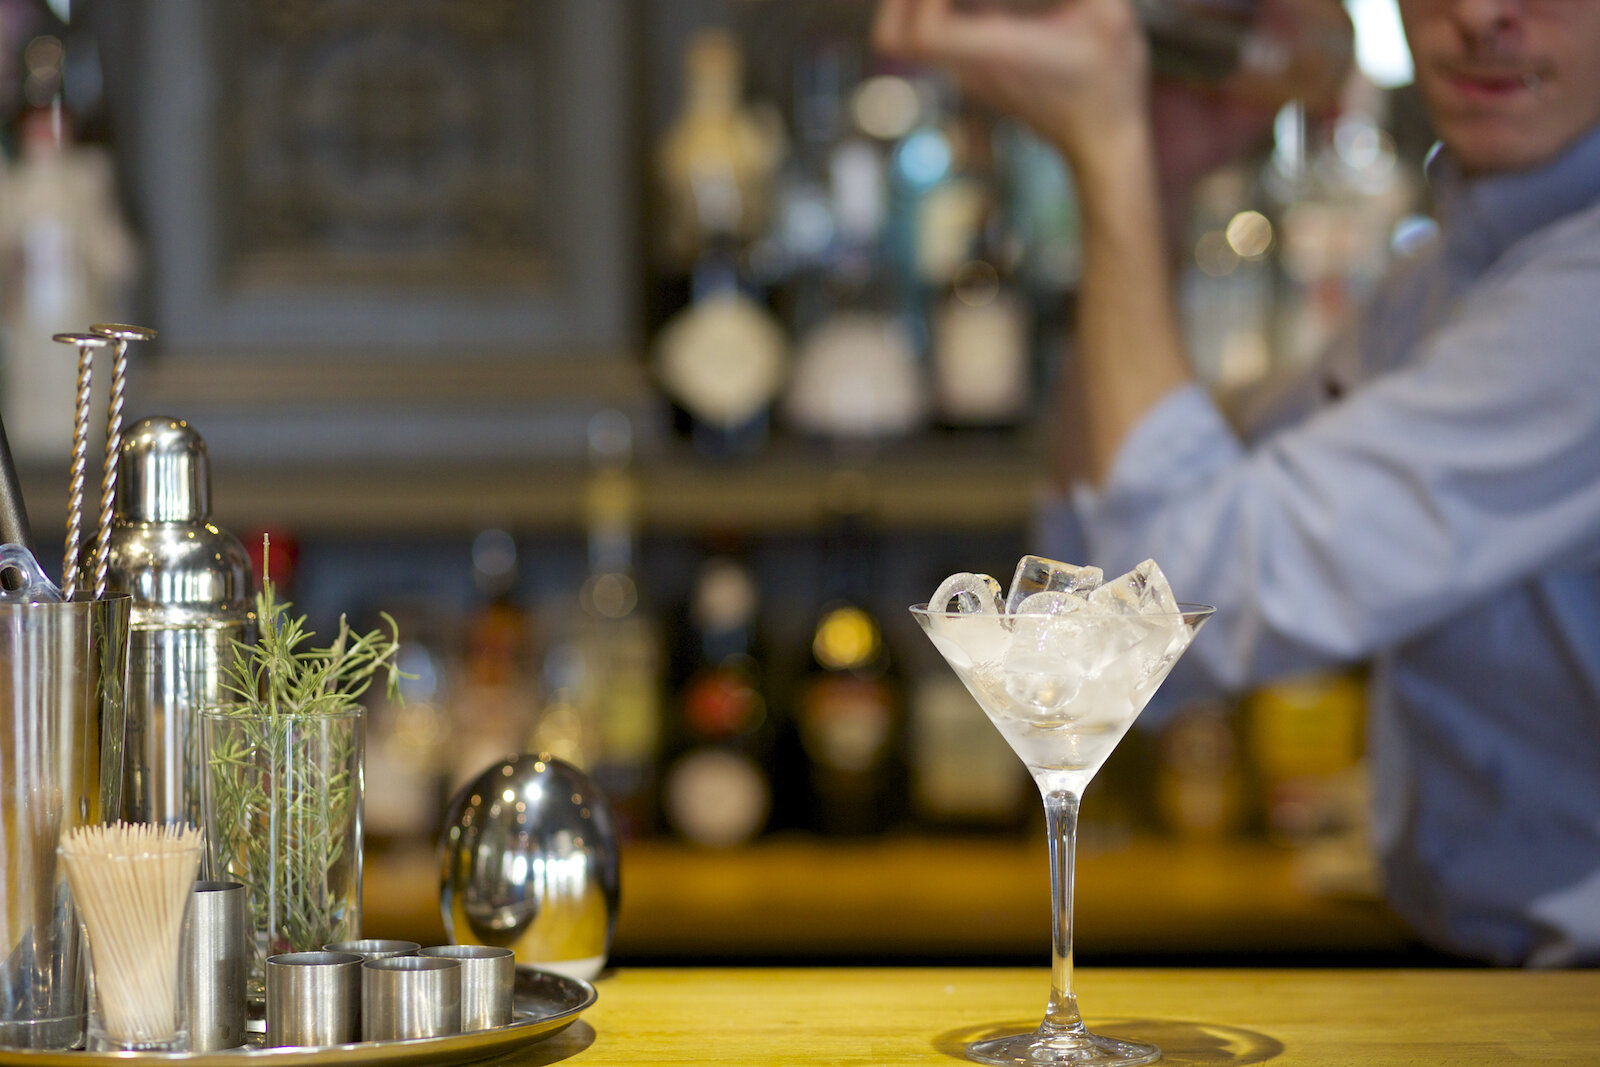 £5 Cash & a Cocktail - Join today and your Club Card account will be credited with £5 - ready to spend on your next visit!You will also be offered a free Cocktail as a welcome to our Club of foodies, friends, connoisseurs & loyal customers!